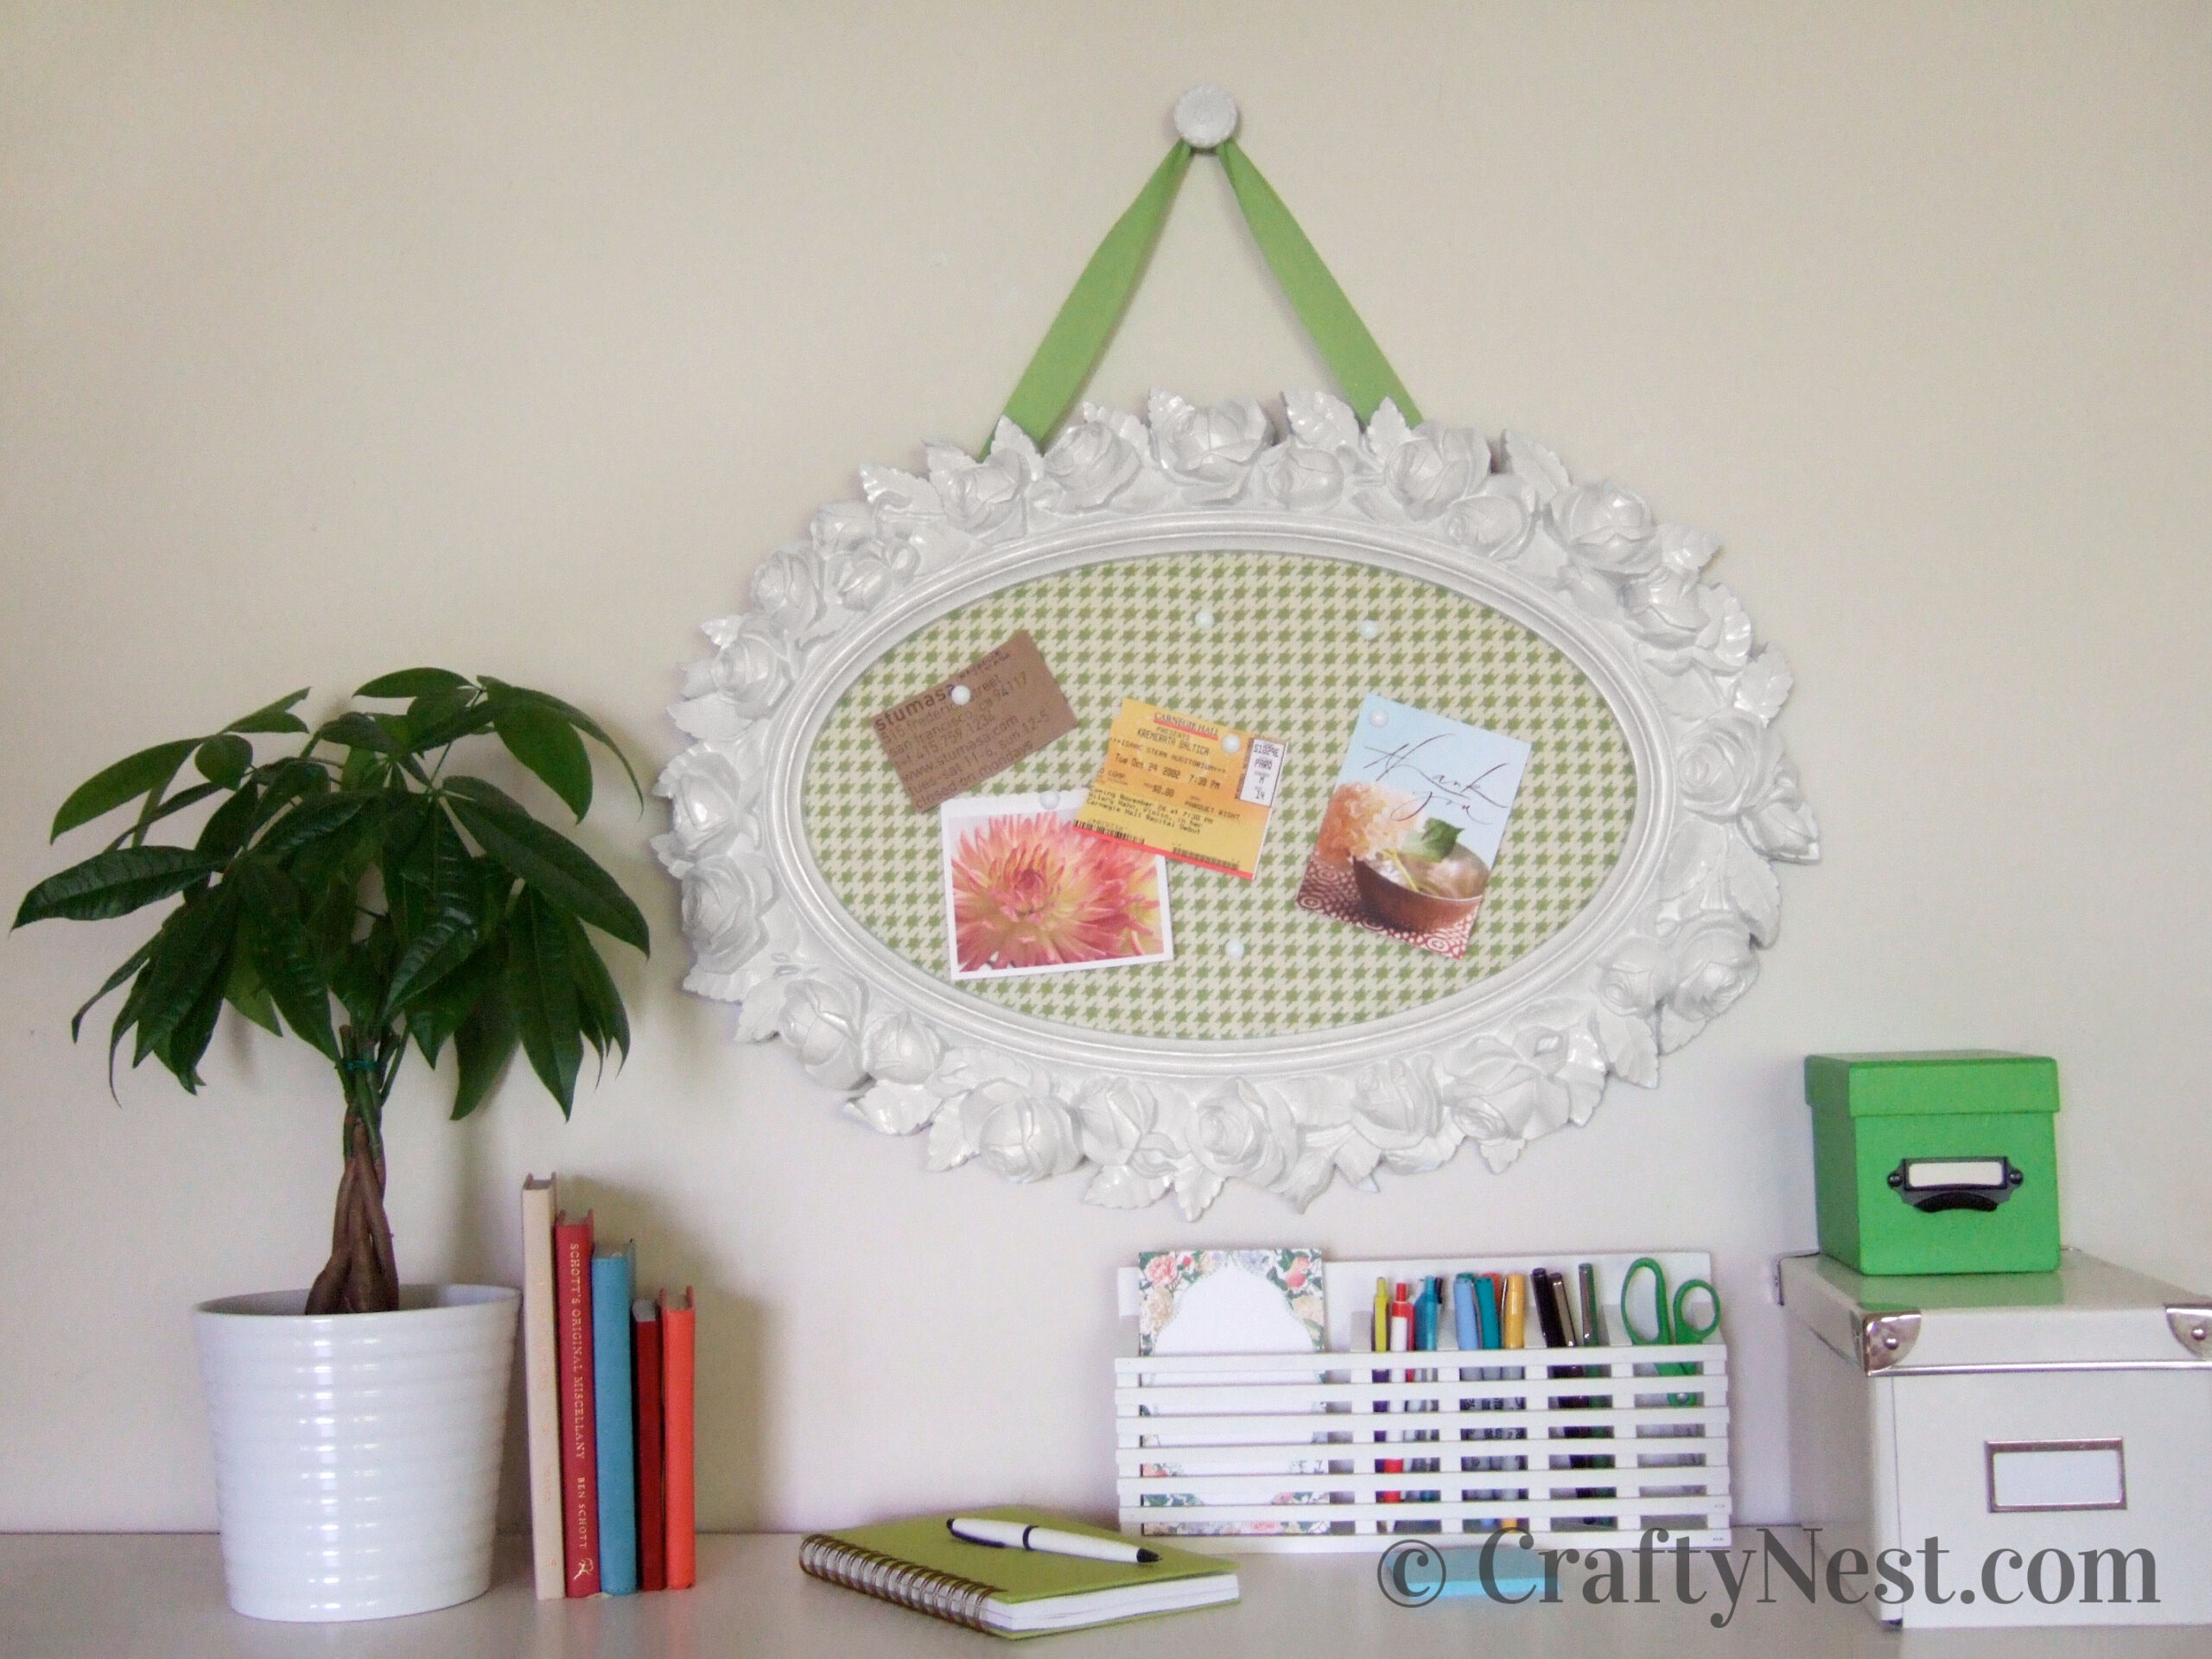 Bulletin board mode from an oval mirror frame, photo